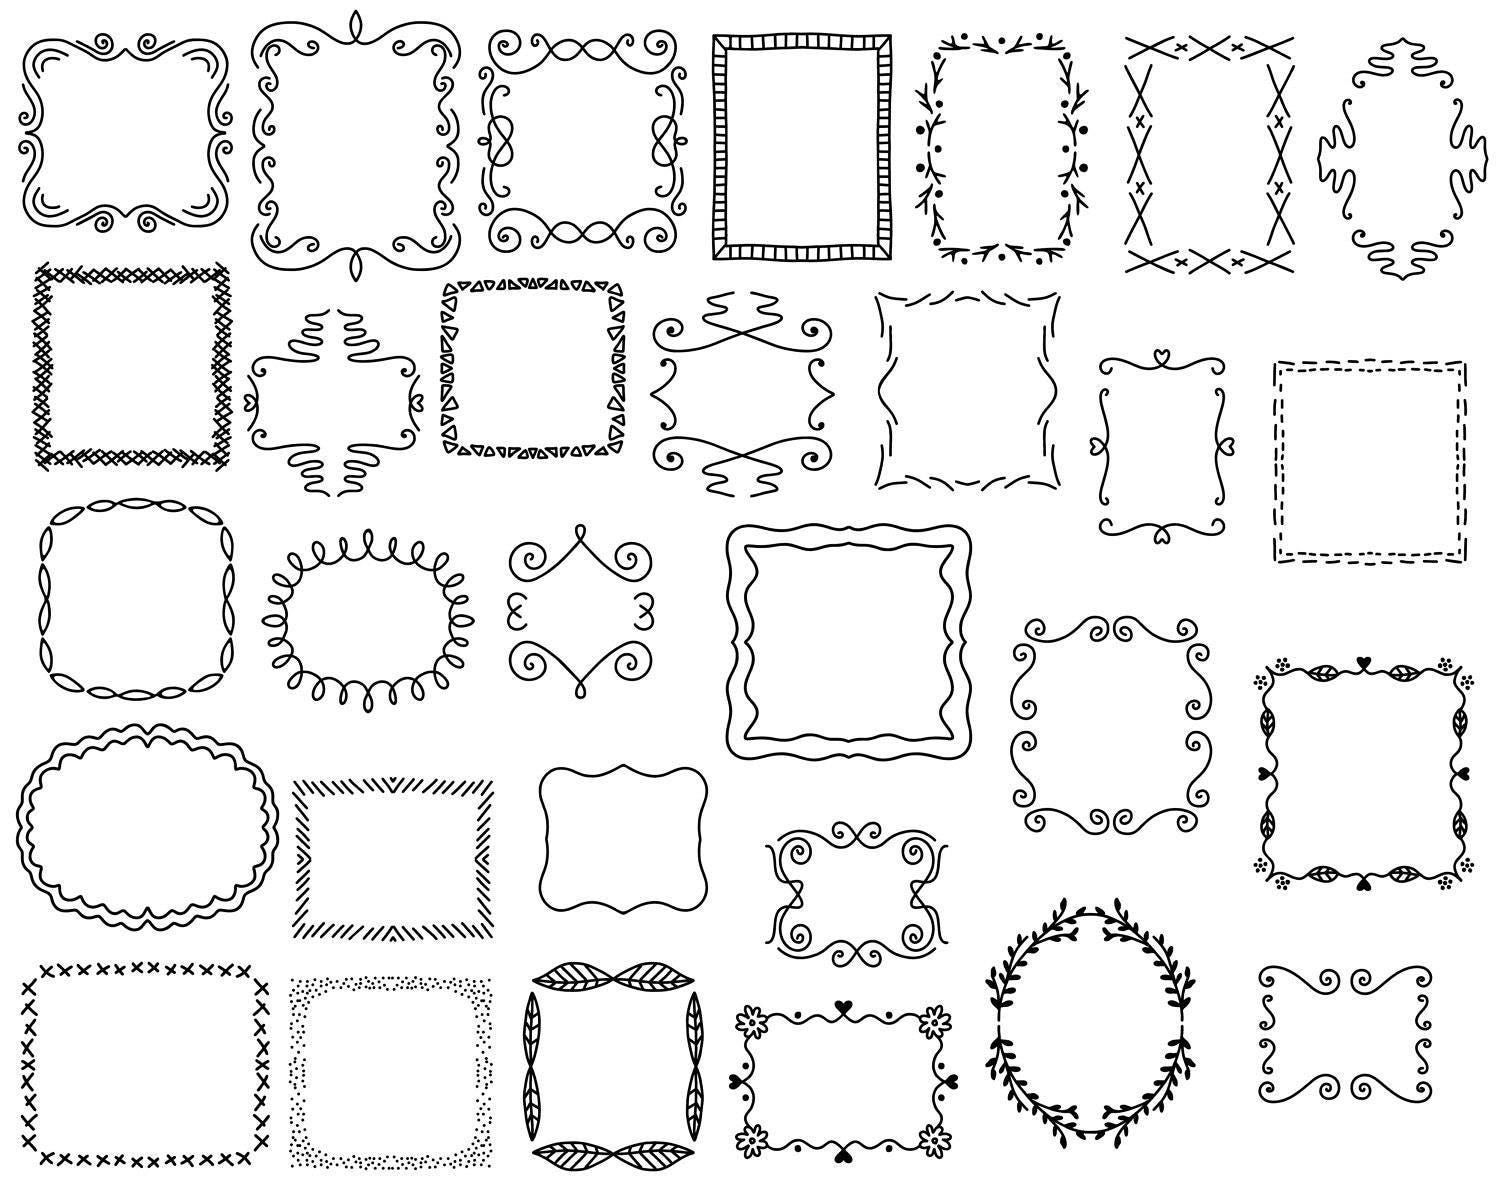 30 Doodle Frames Vector Pack, Hand Drawn Doodle Clipart ,Hand Drawn ...